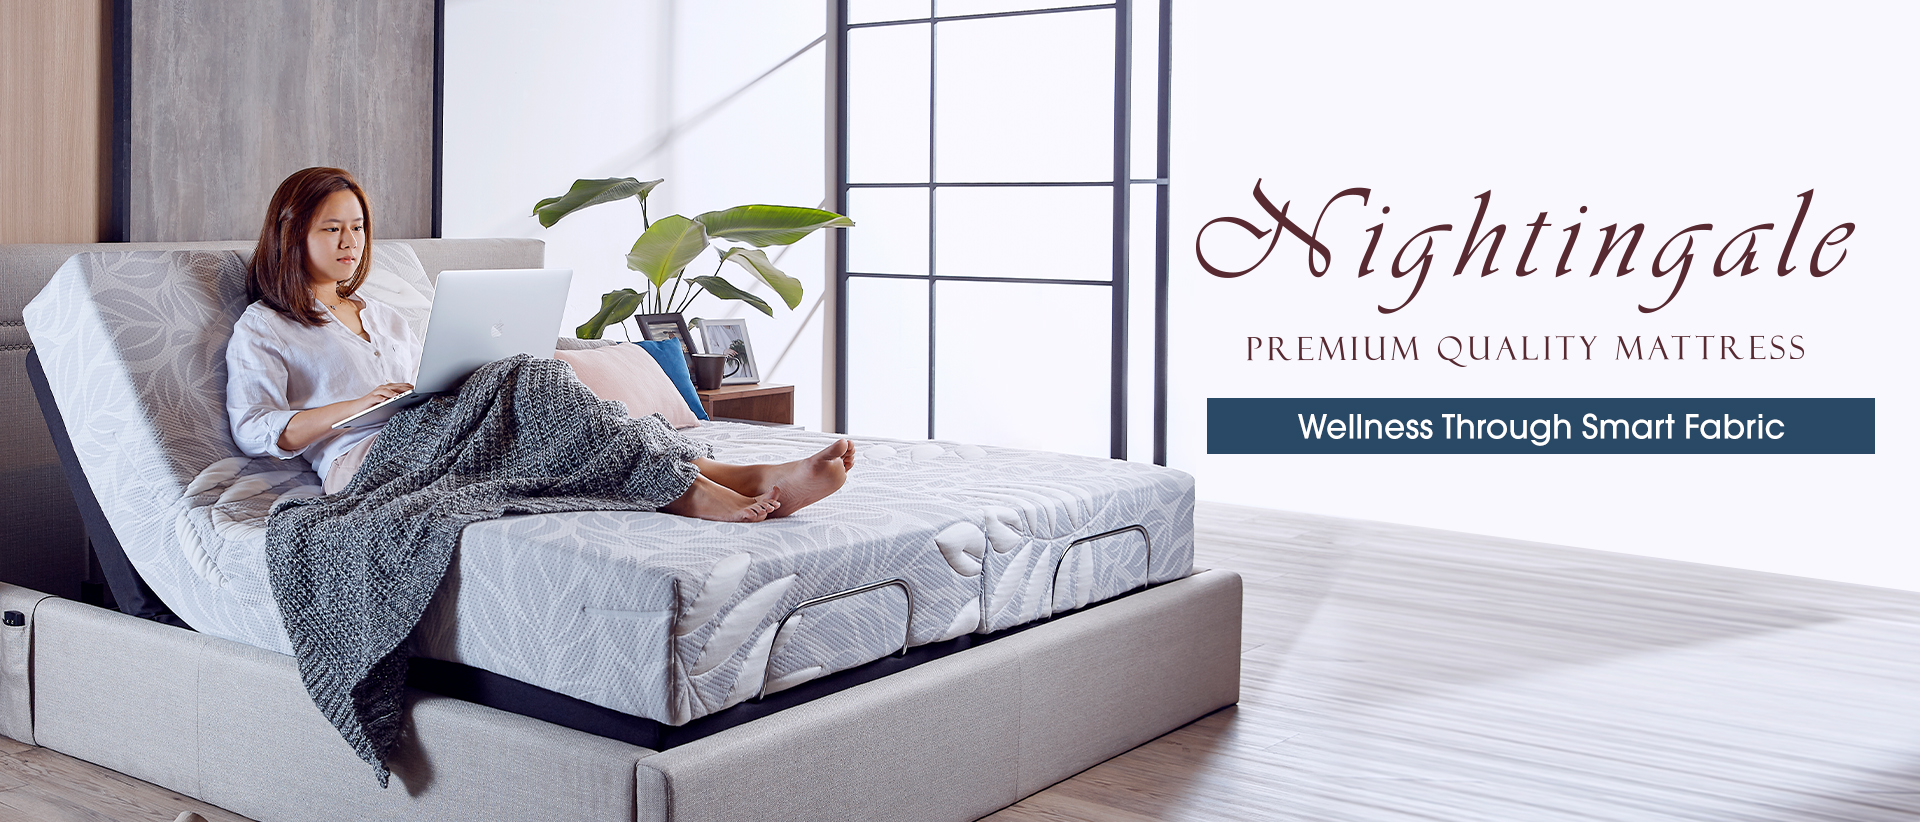 Nightingale Premium Mattress